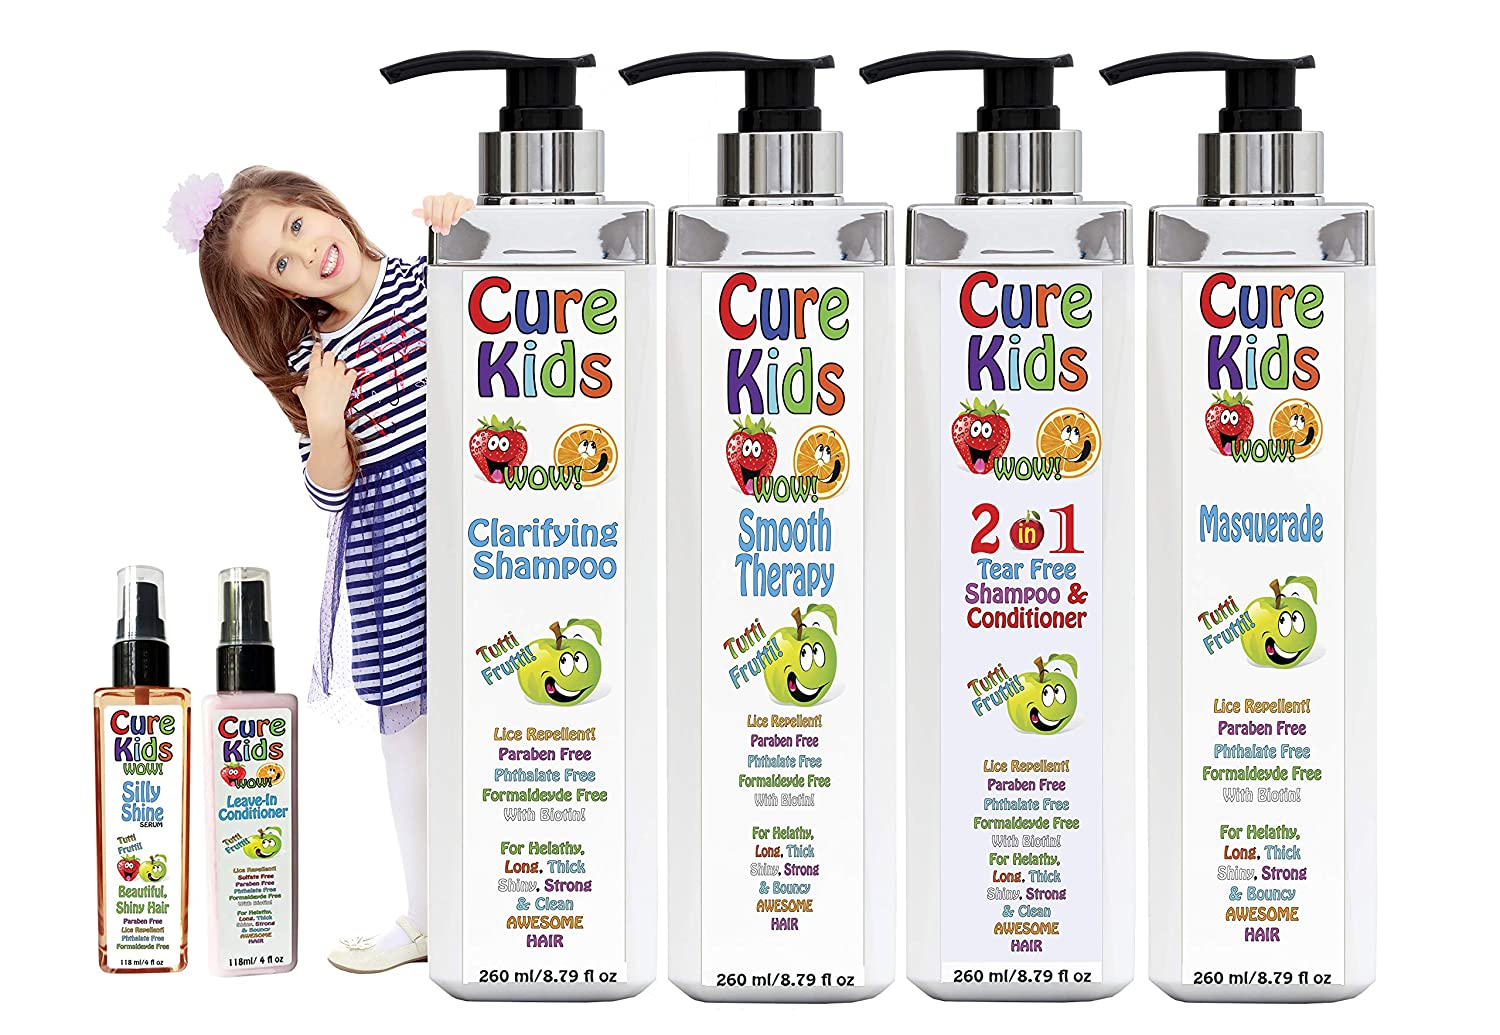 Cure Kids Smooth Therapy Silky Shiny Hair Straightening Treatment 6pc Full Kit kids. Safe, Paraben Free Lice Repellent. Swimmers Safe for all little ones children child baby babies hair (8 fl oz)